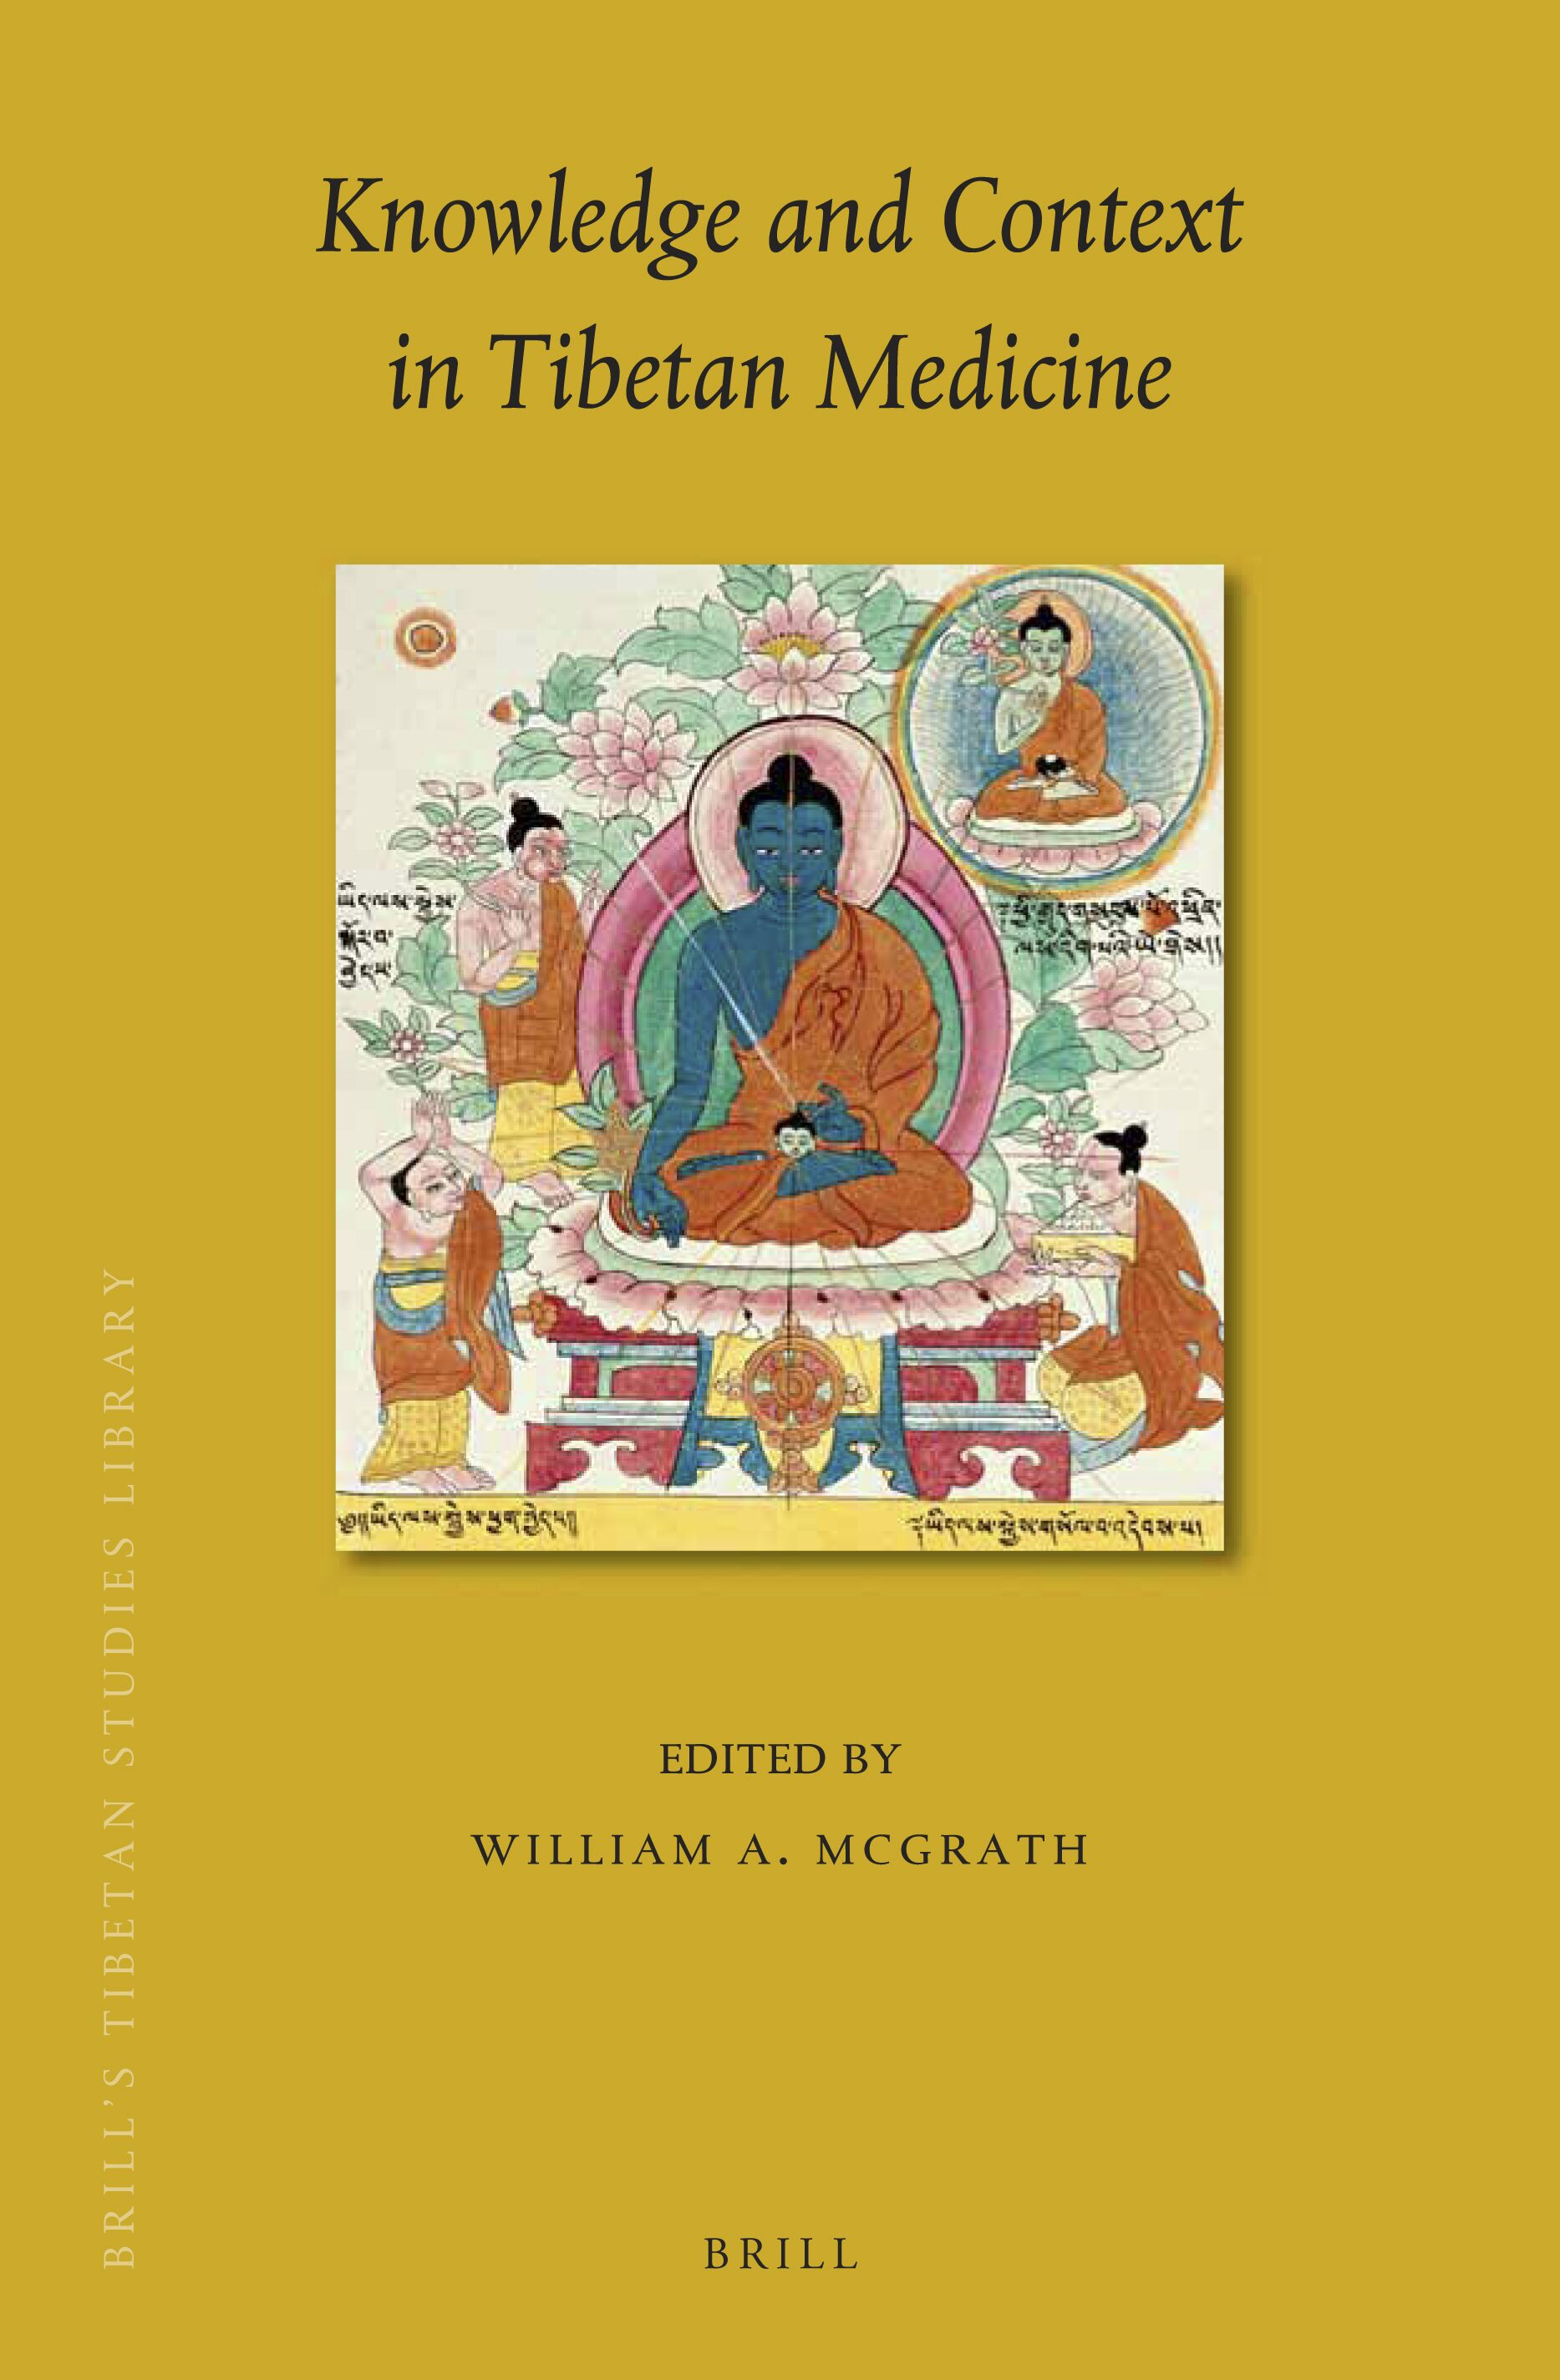 Tantric Divination and Empirical Diagnosis a Genealogy of